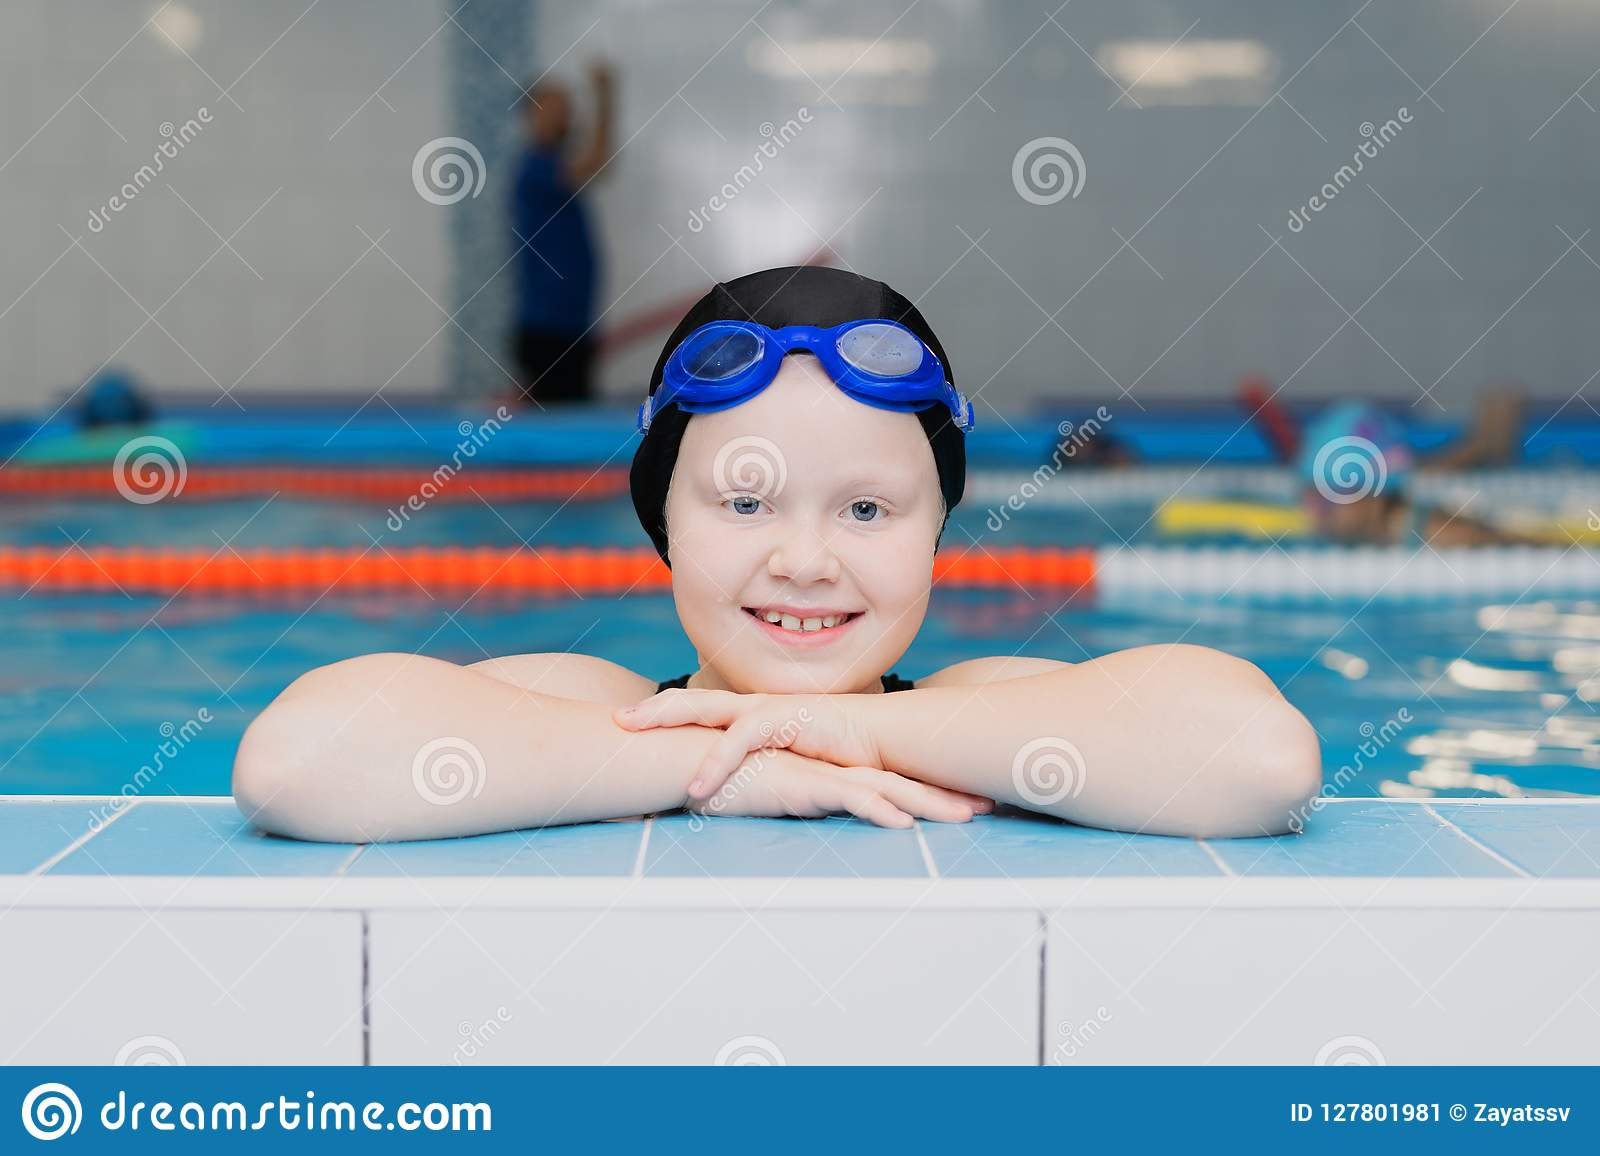 Swimming lessons for children in the pool - portrait of a beautiful white-skinned girl in a bathing suit and swim cap